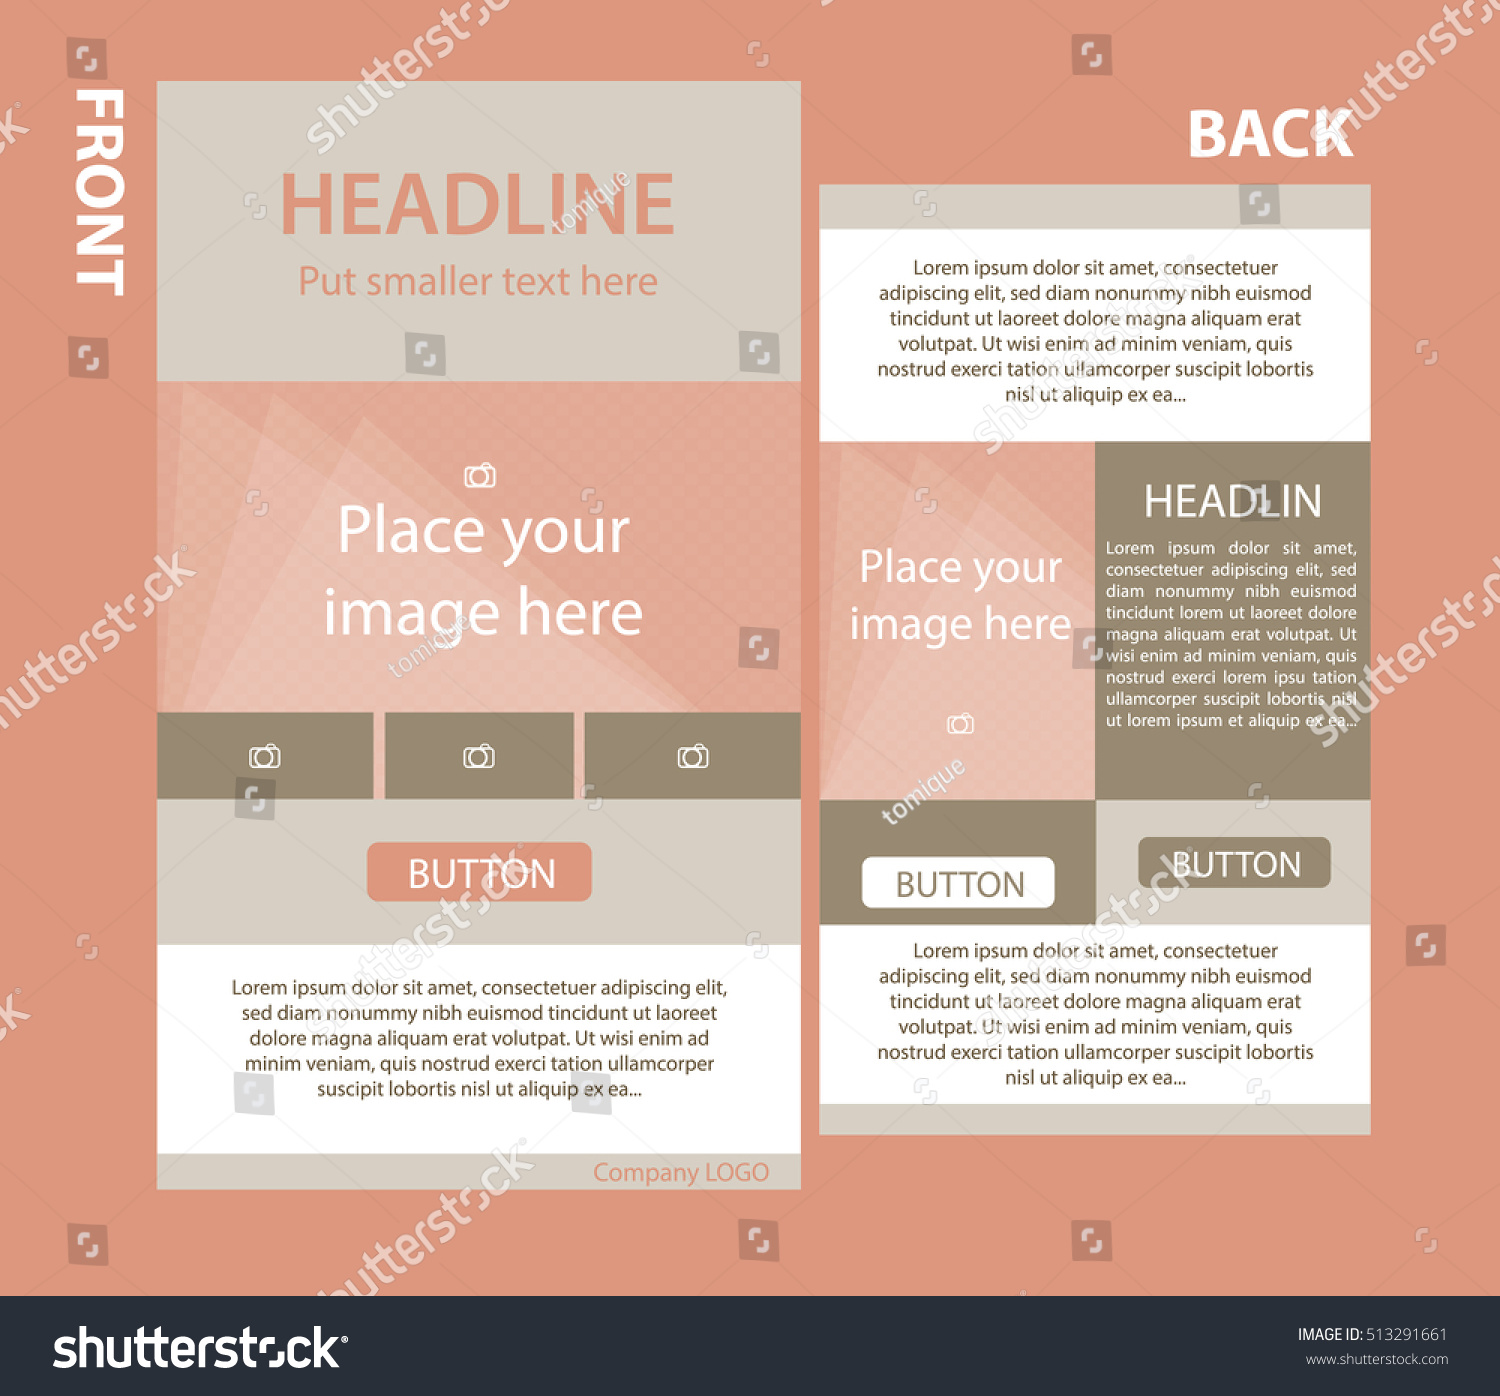 Newsletter Corporate Vector Template With Front And Back Layout | Ez Canvas